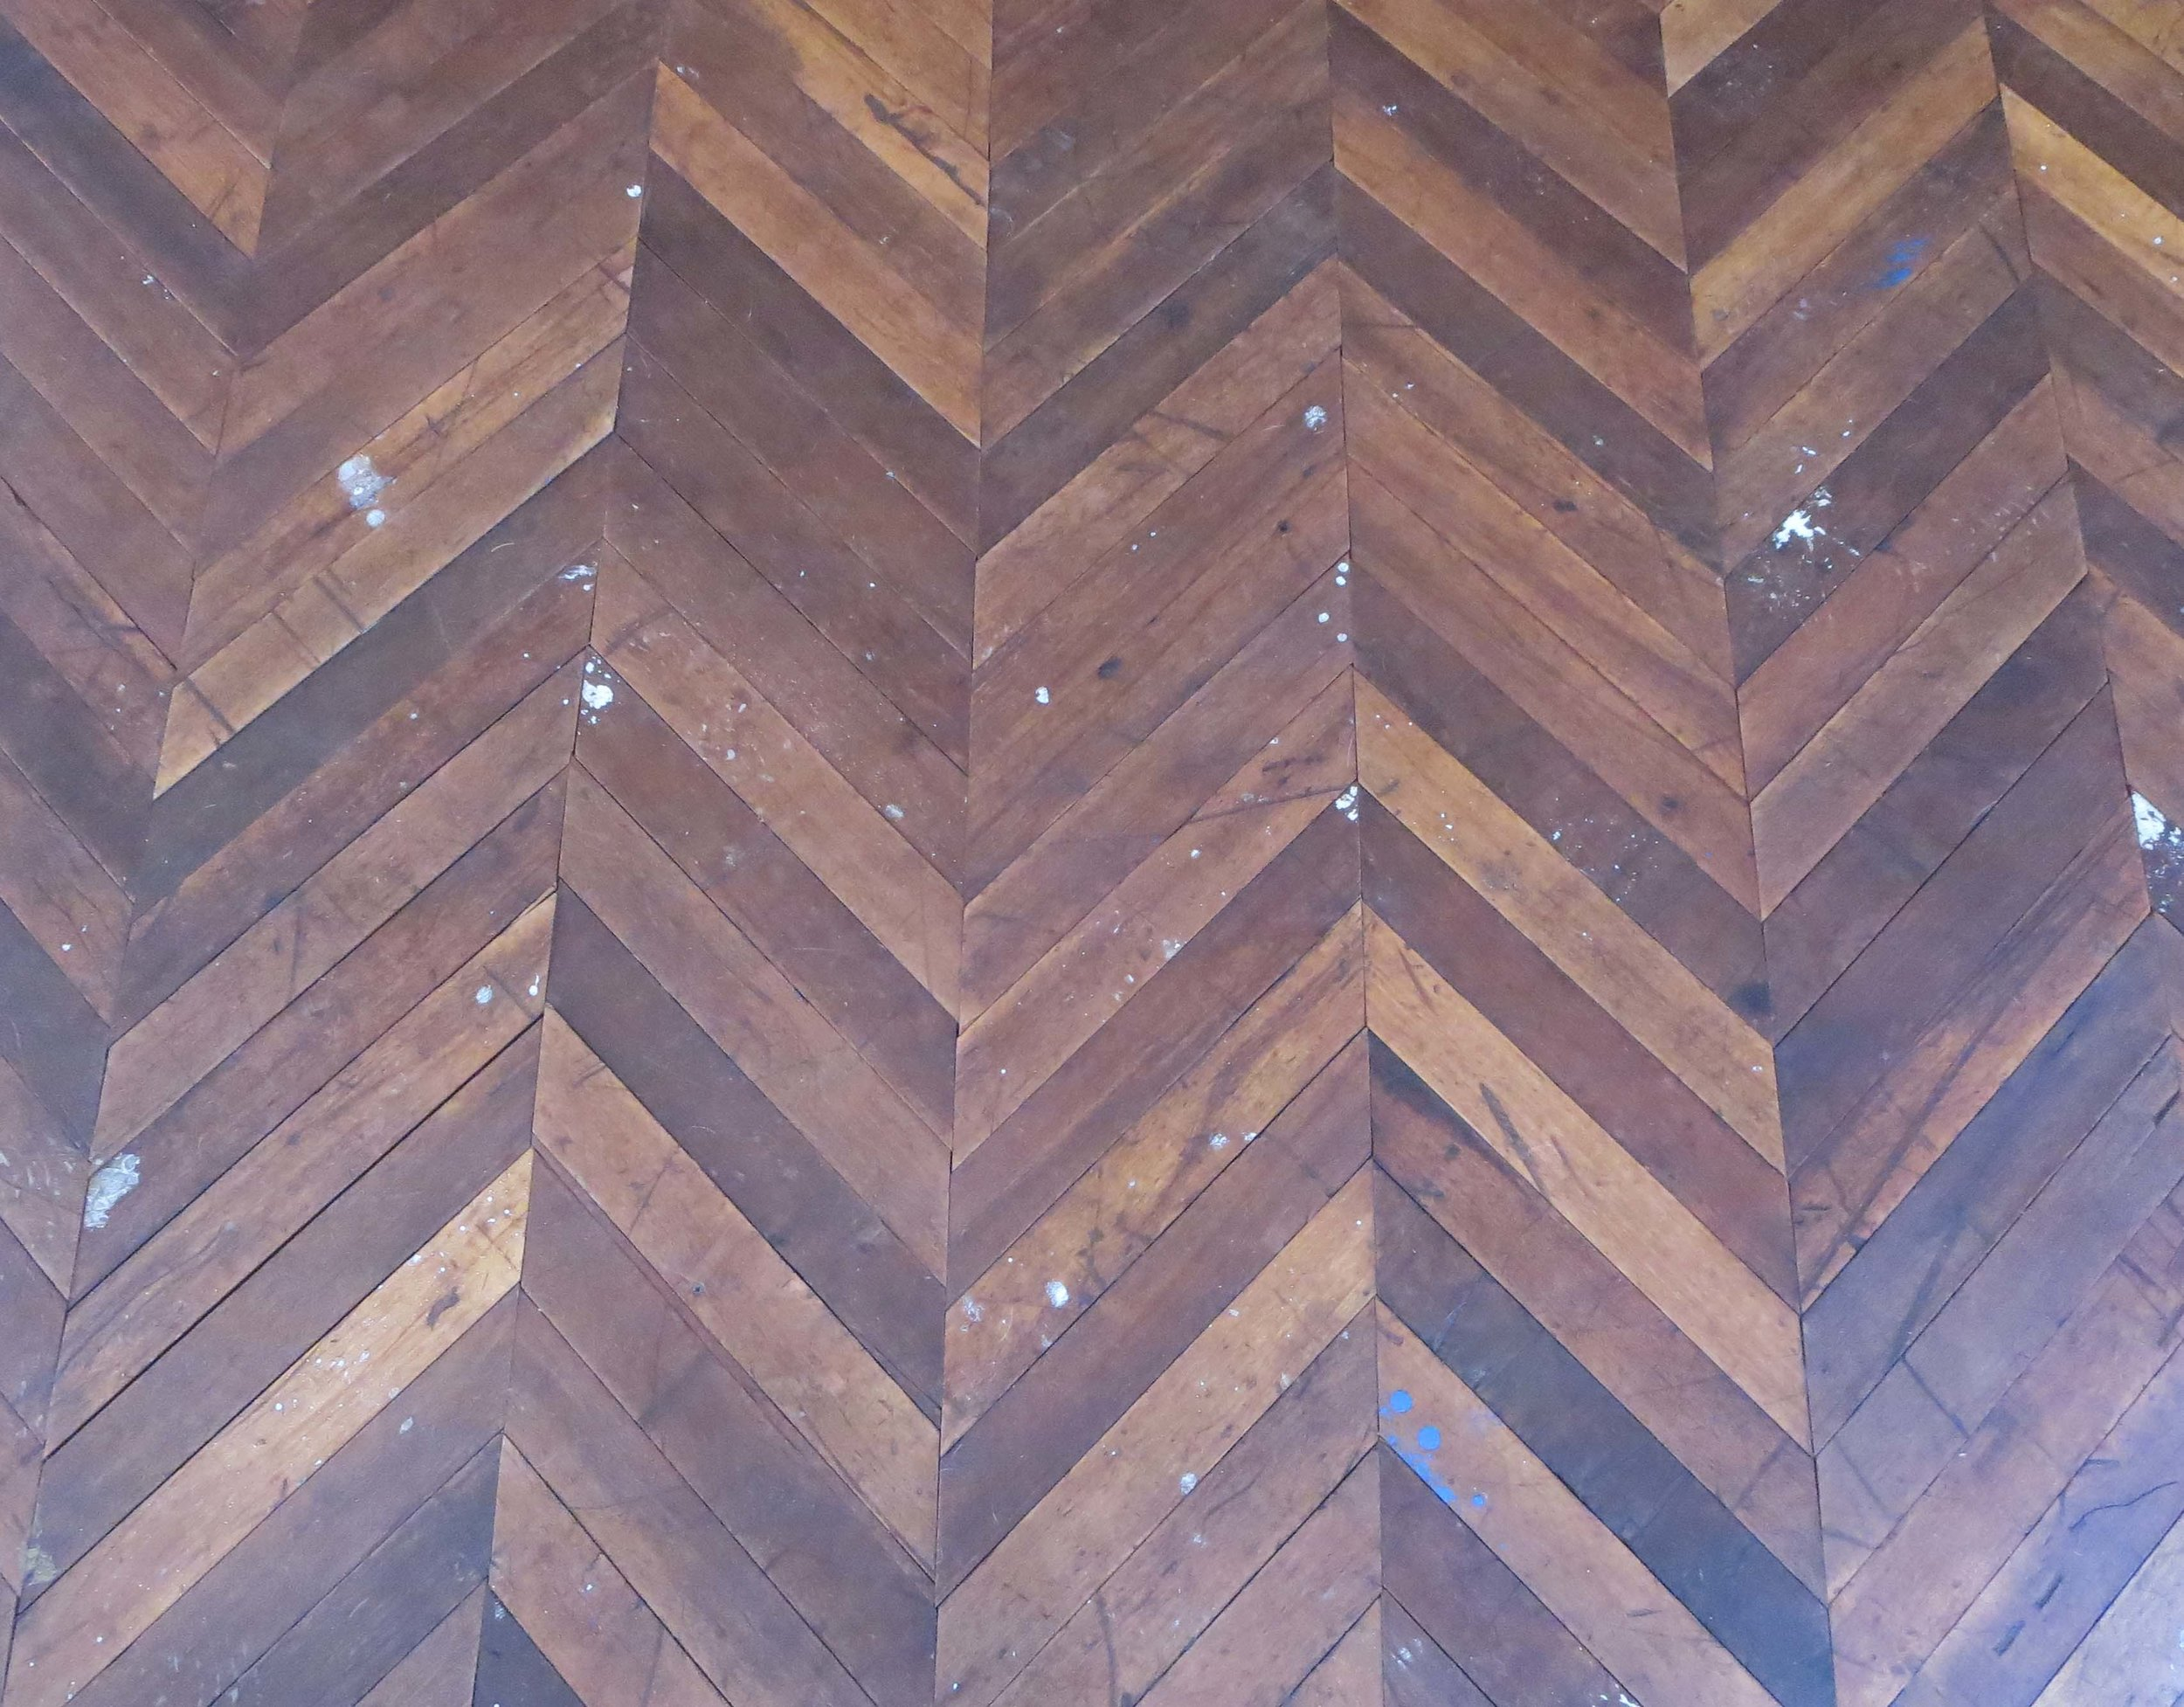 The hand-laid wood tiles in Alex's studio, built for her by her husband.